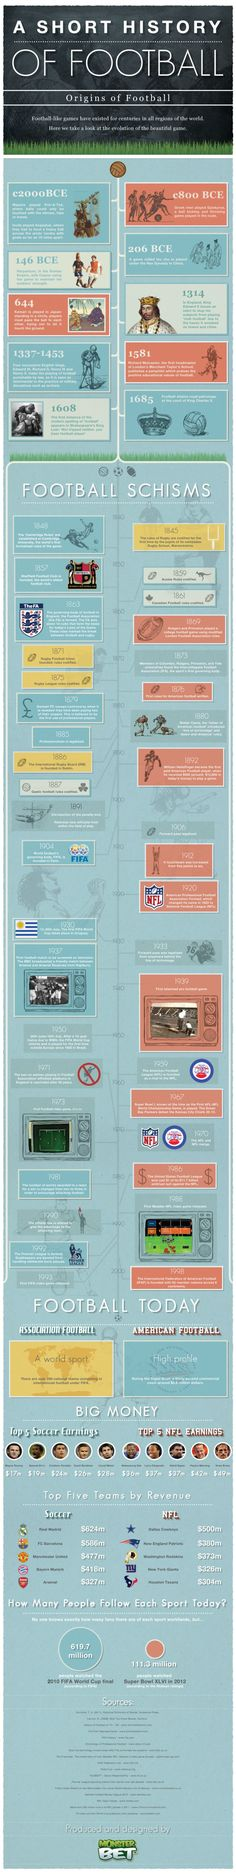 A Brief History of Football | Infographic | Monsterbet.co.uk